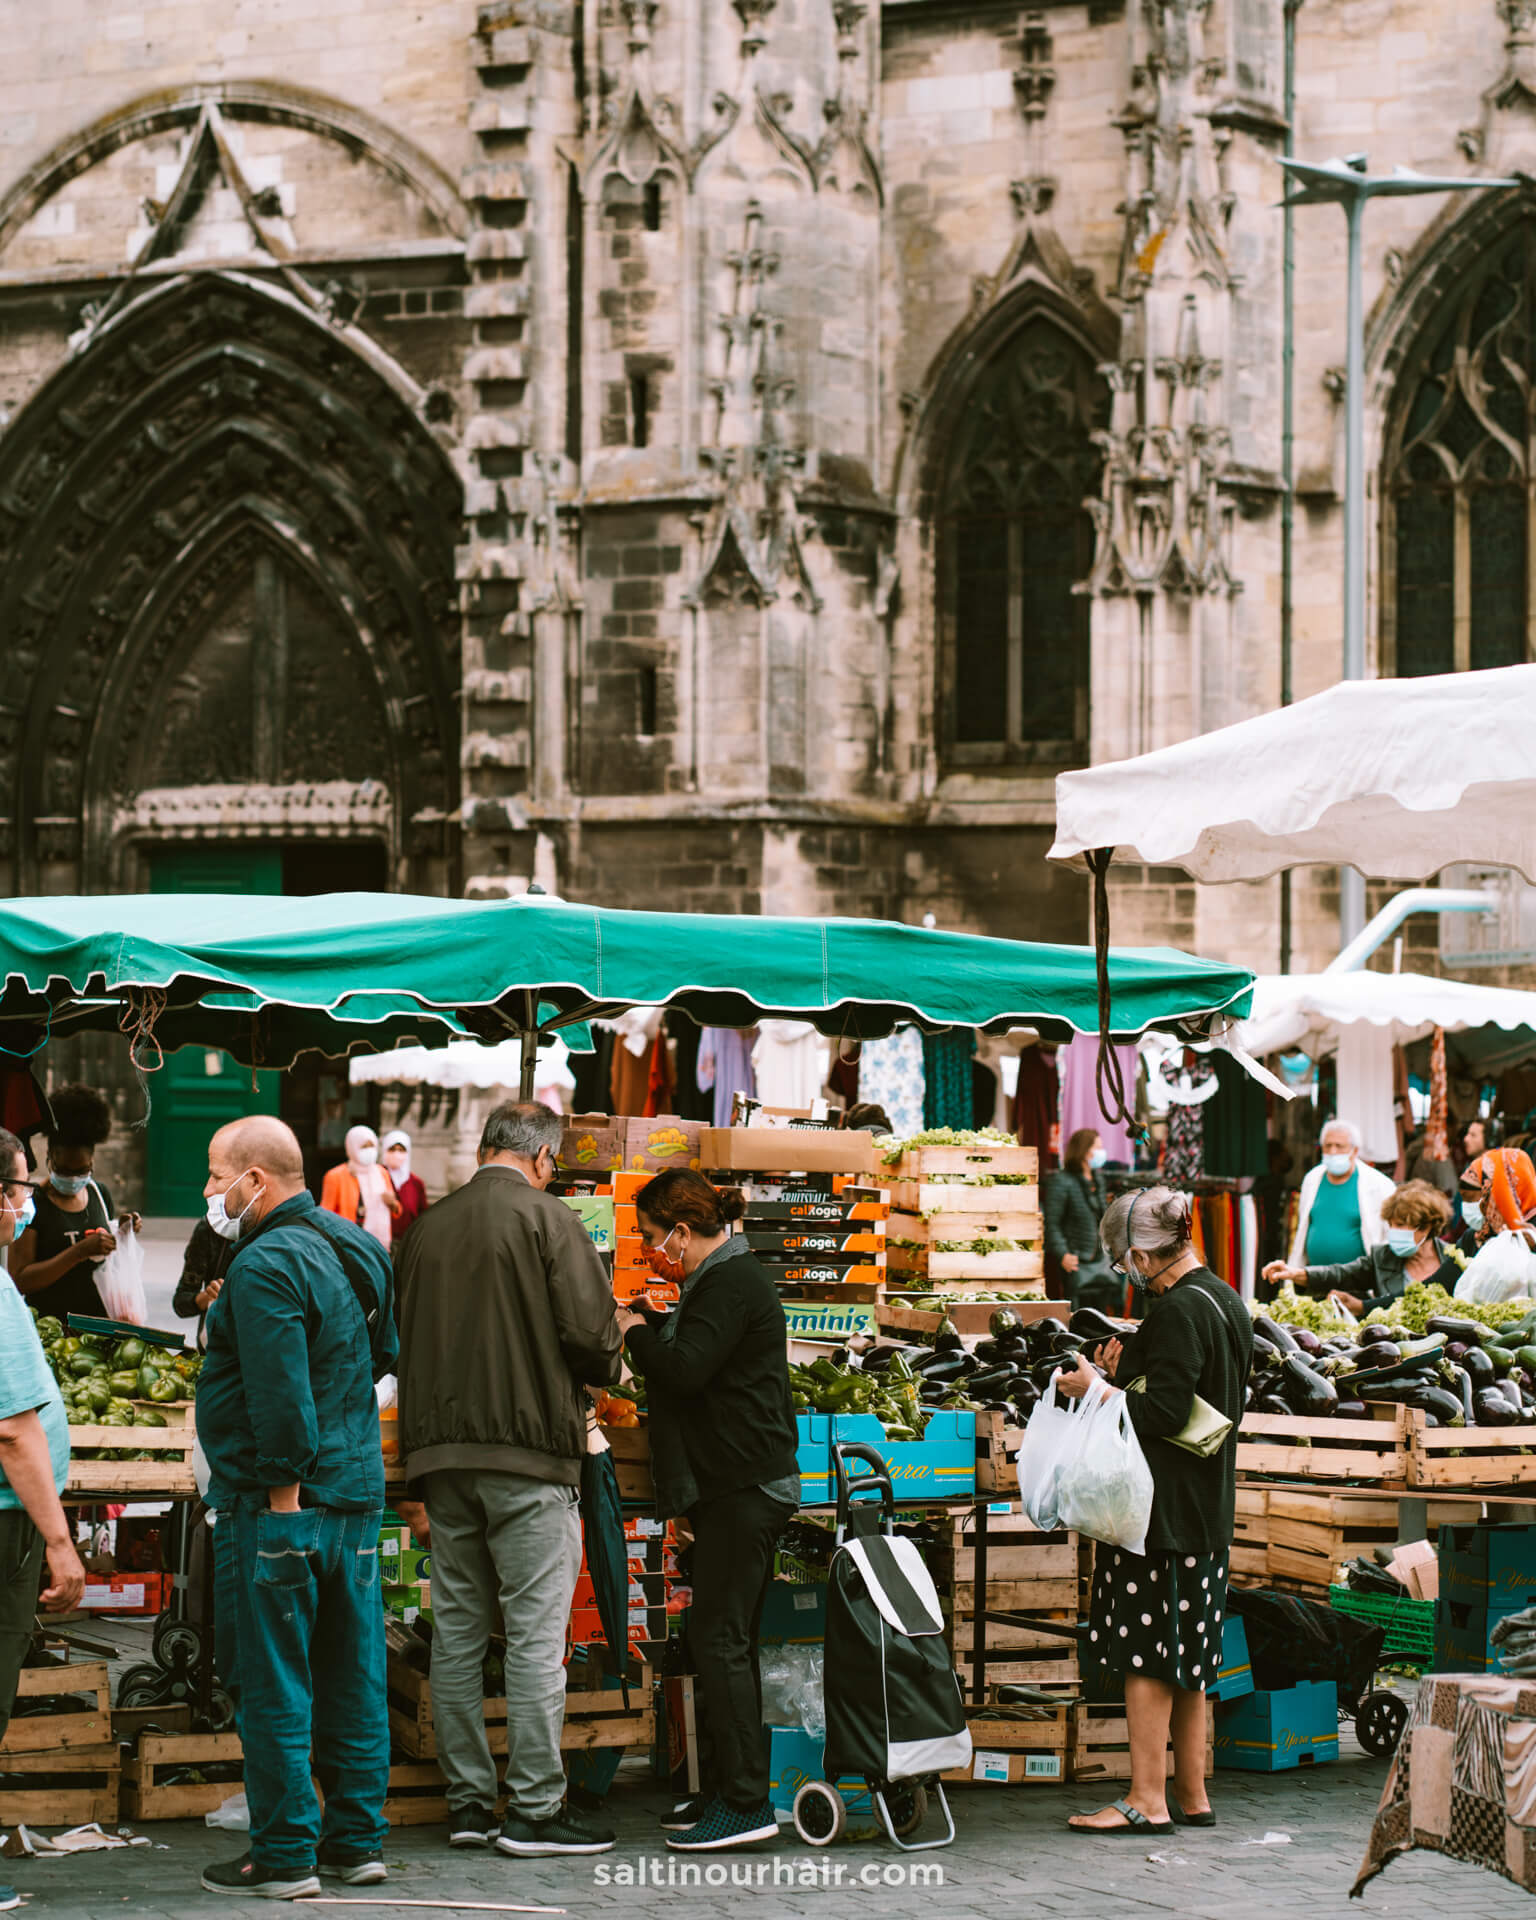 Saturday Market at St. Michael bordeaux things to do